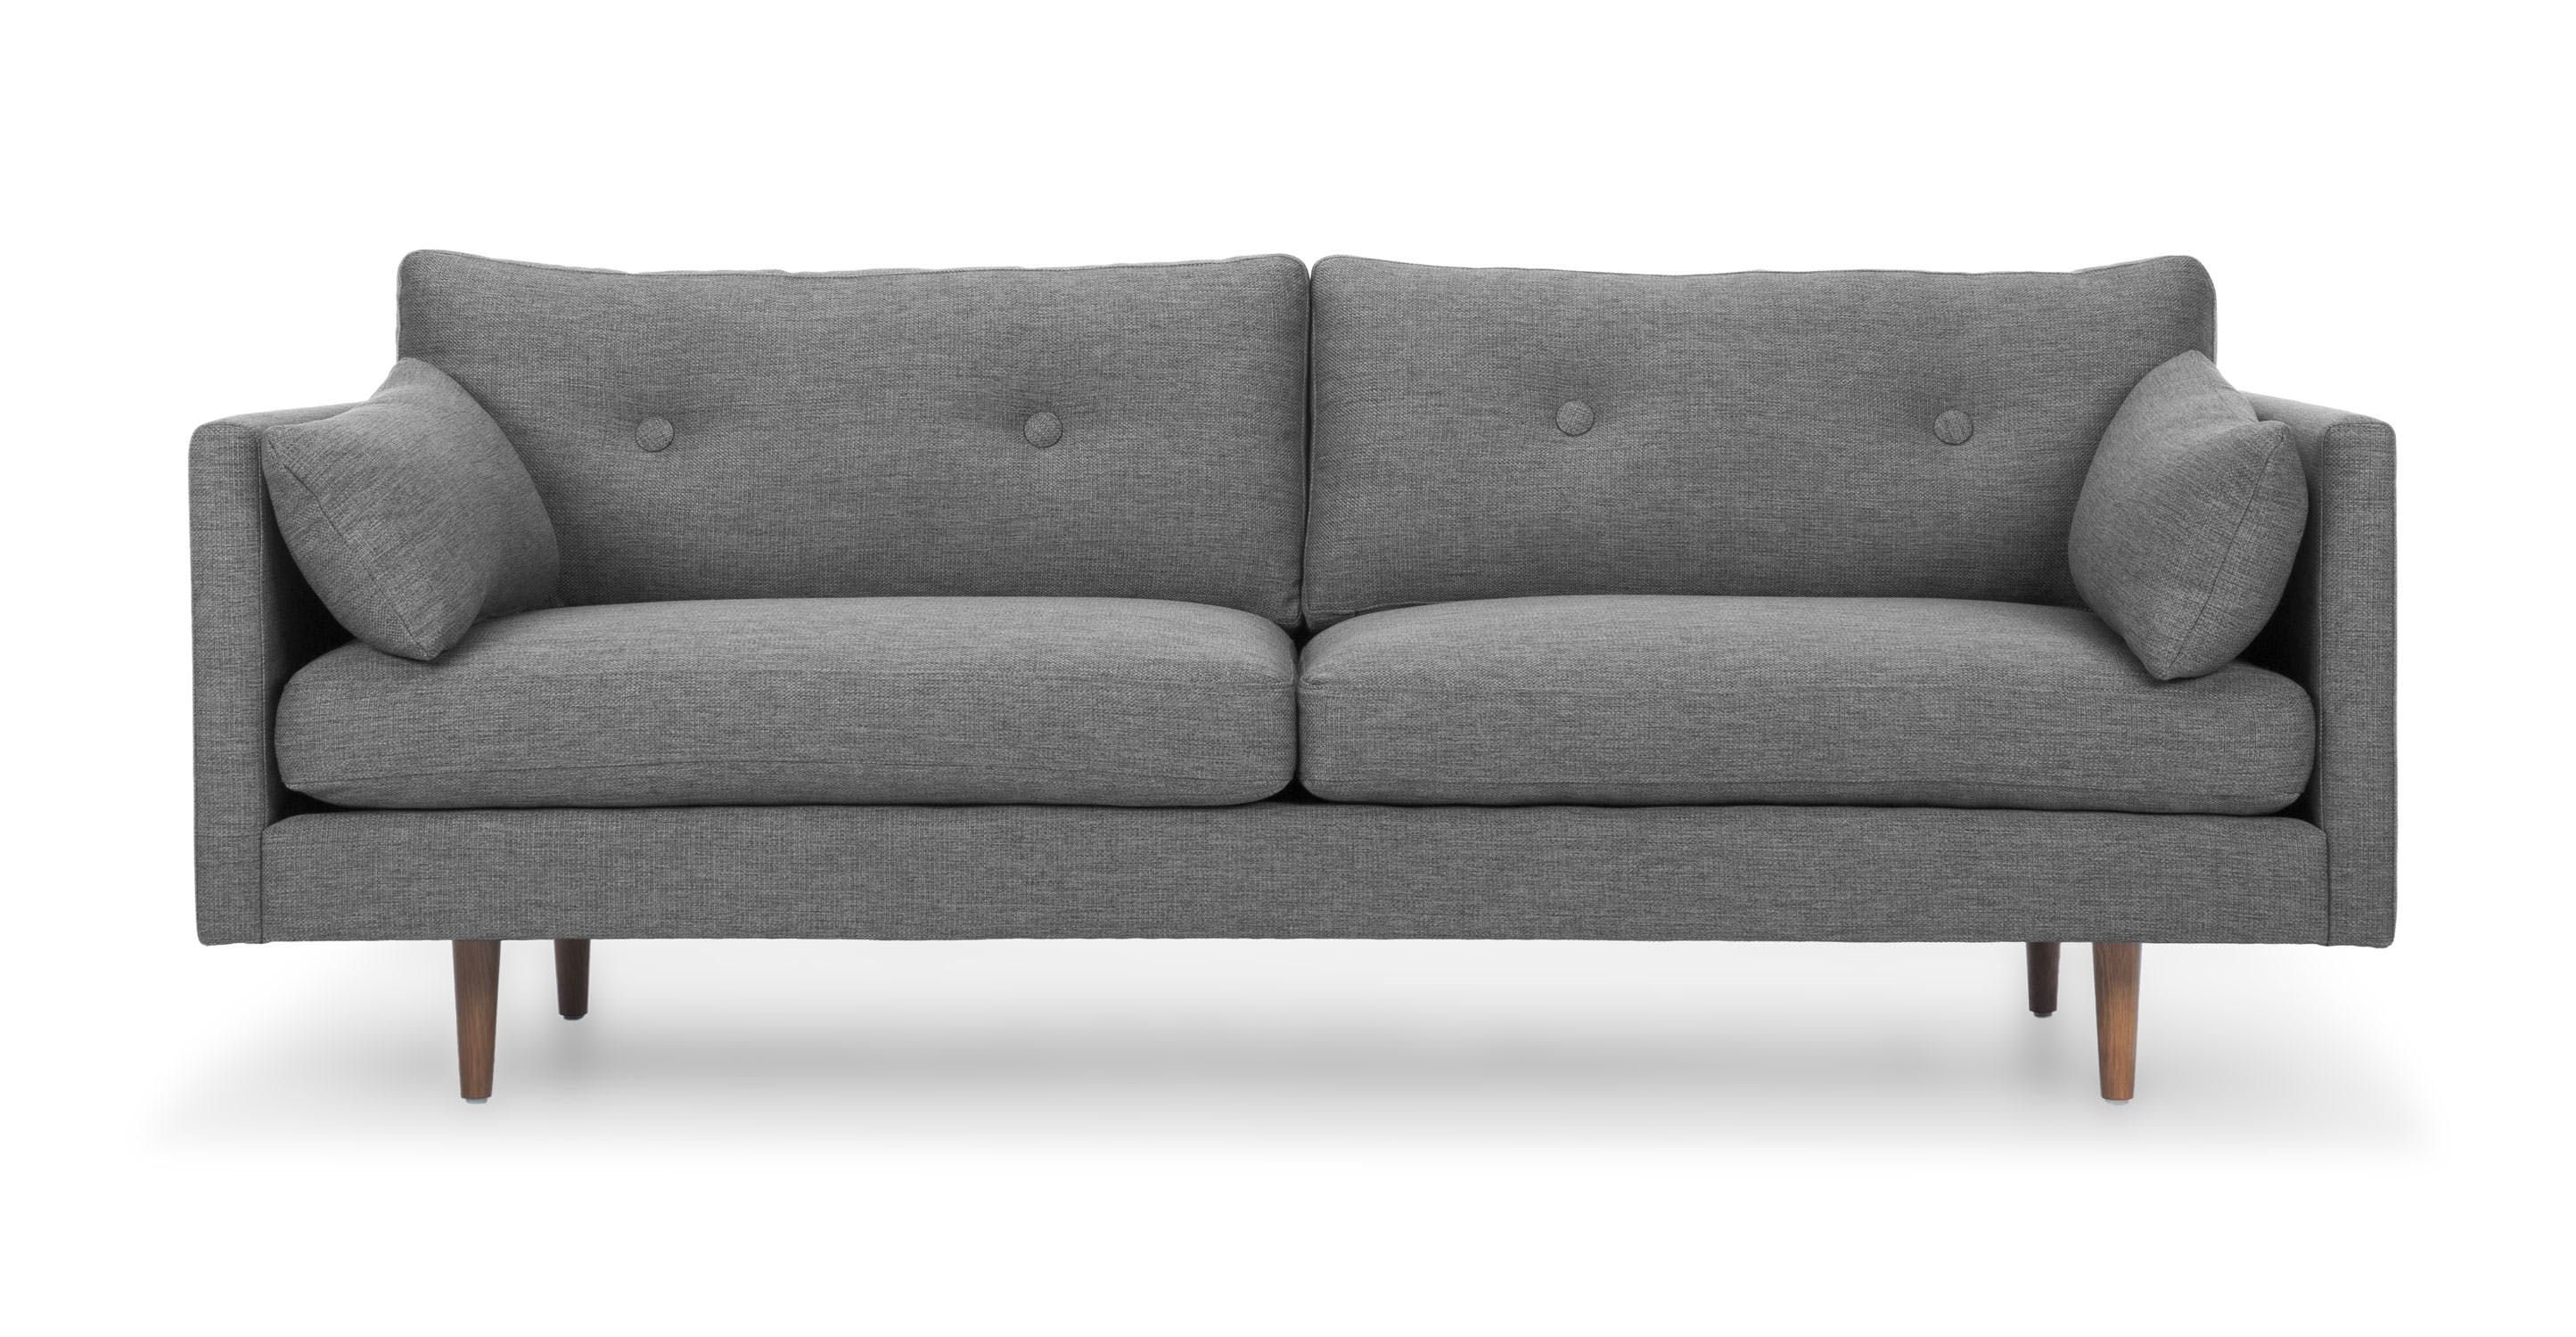 We Saw Sat Reviewed The Most Comfortable Sofas At Article Apartment Therapy Sofa Squad